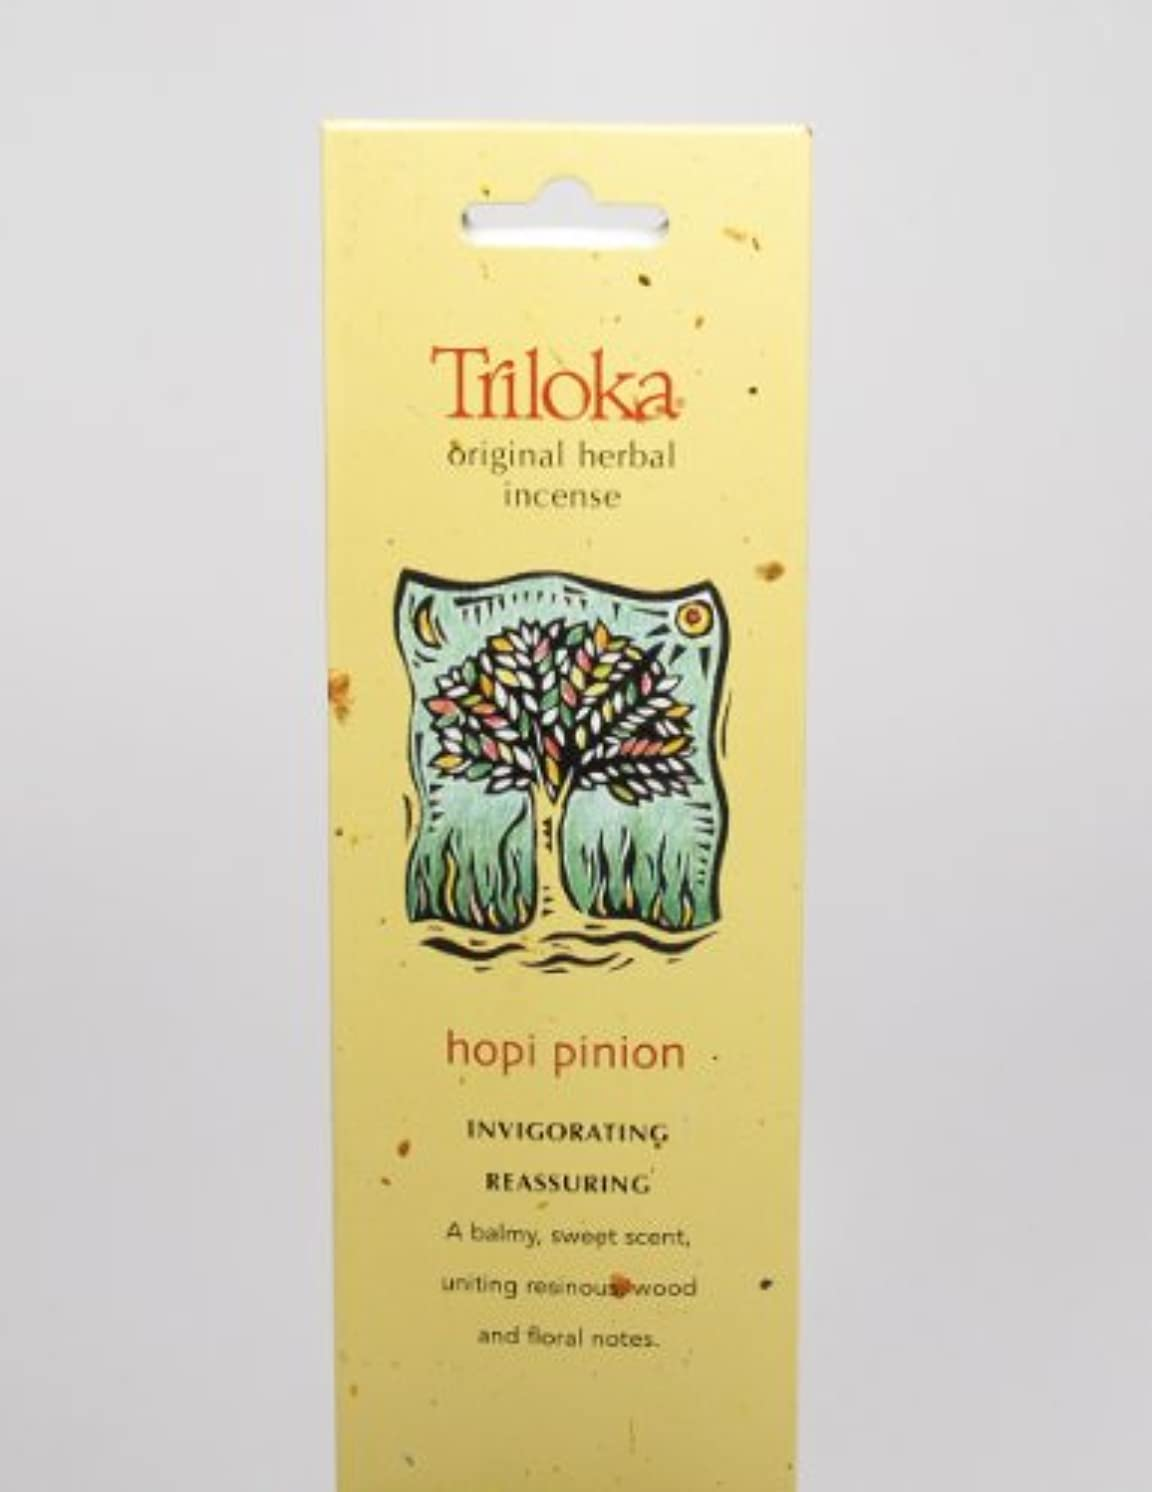 Hopi Pinon – Triloka元Herbal Incense Sticks